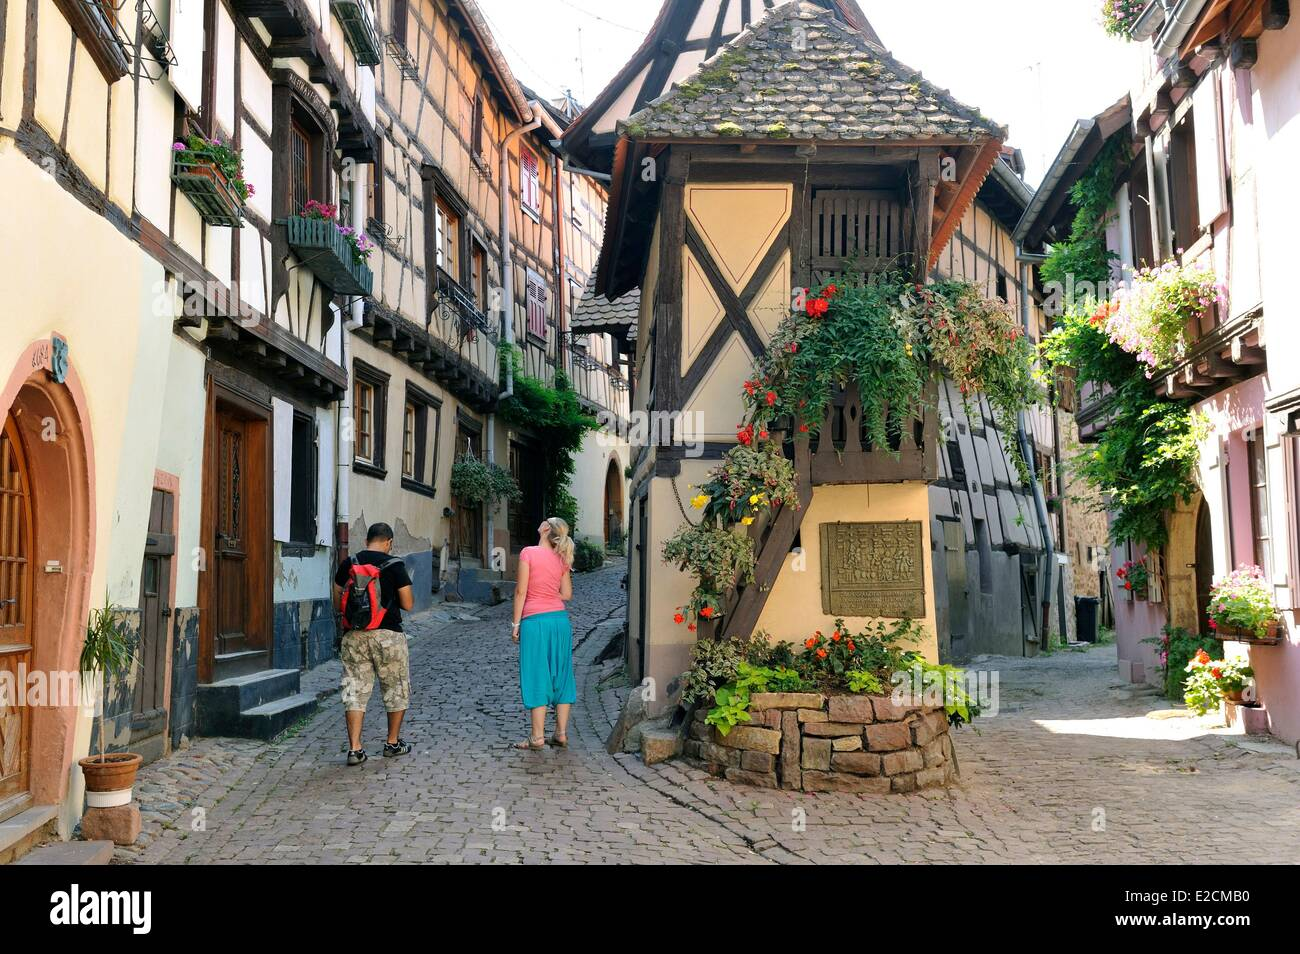 france haut rhin alsace wine route eguisheim labelled les plus stock photo royalty free. Black Bedroom Furniture Sets. Home Design Ideas